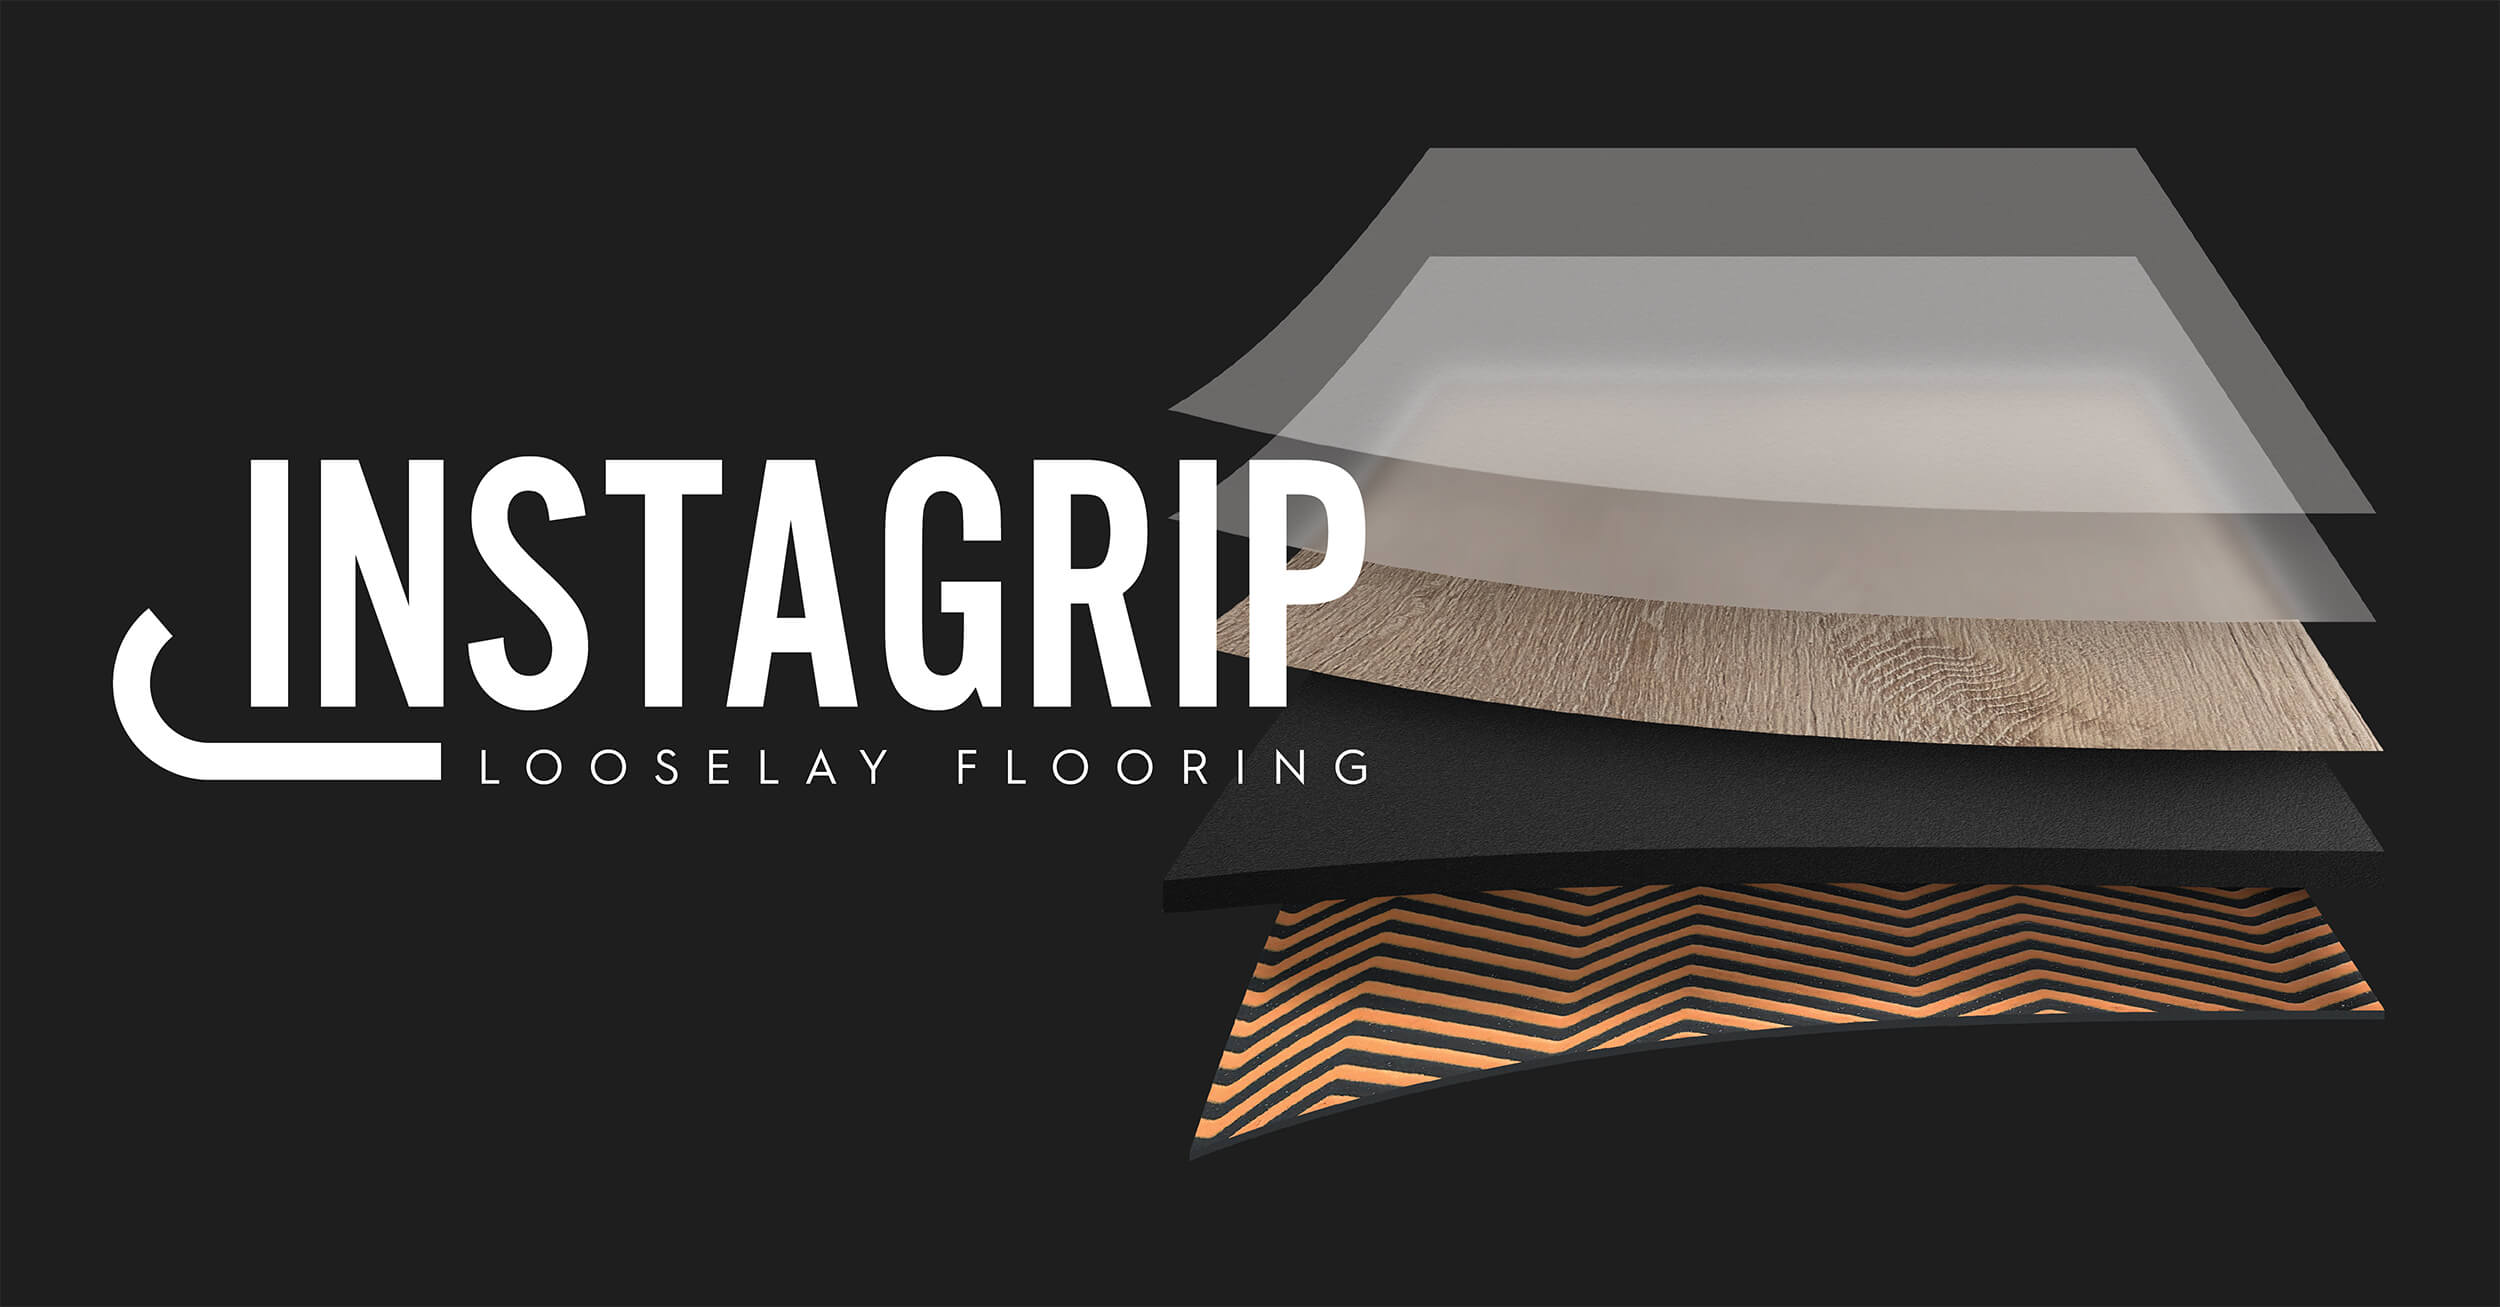 The simplest way to install new flooring